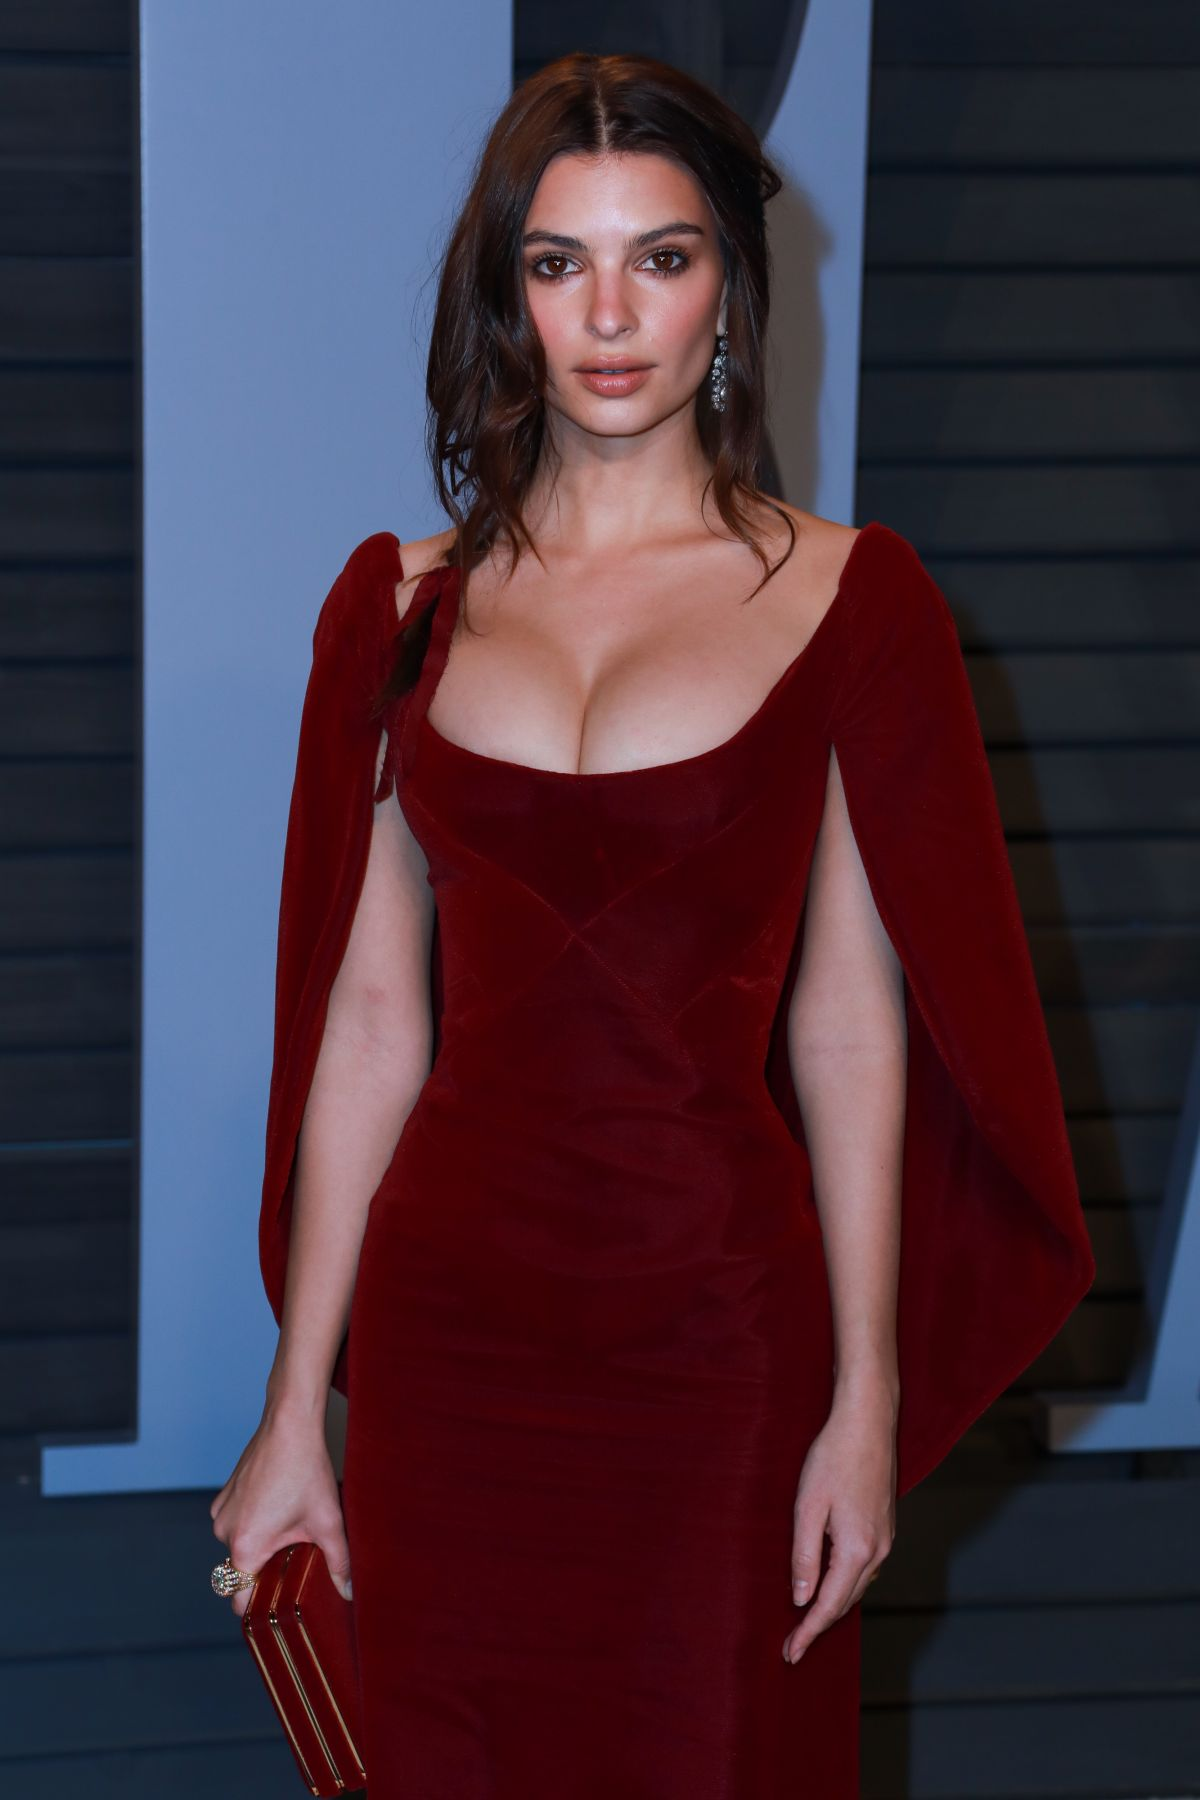 Instagram Emily O?Hara Ratajkowski naked (72 photos), Pussy, Leaked, Boobs, see through 2017